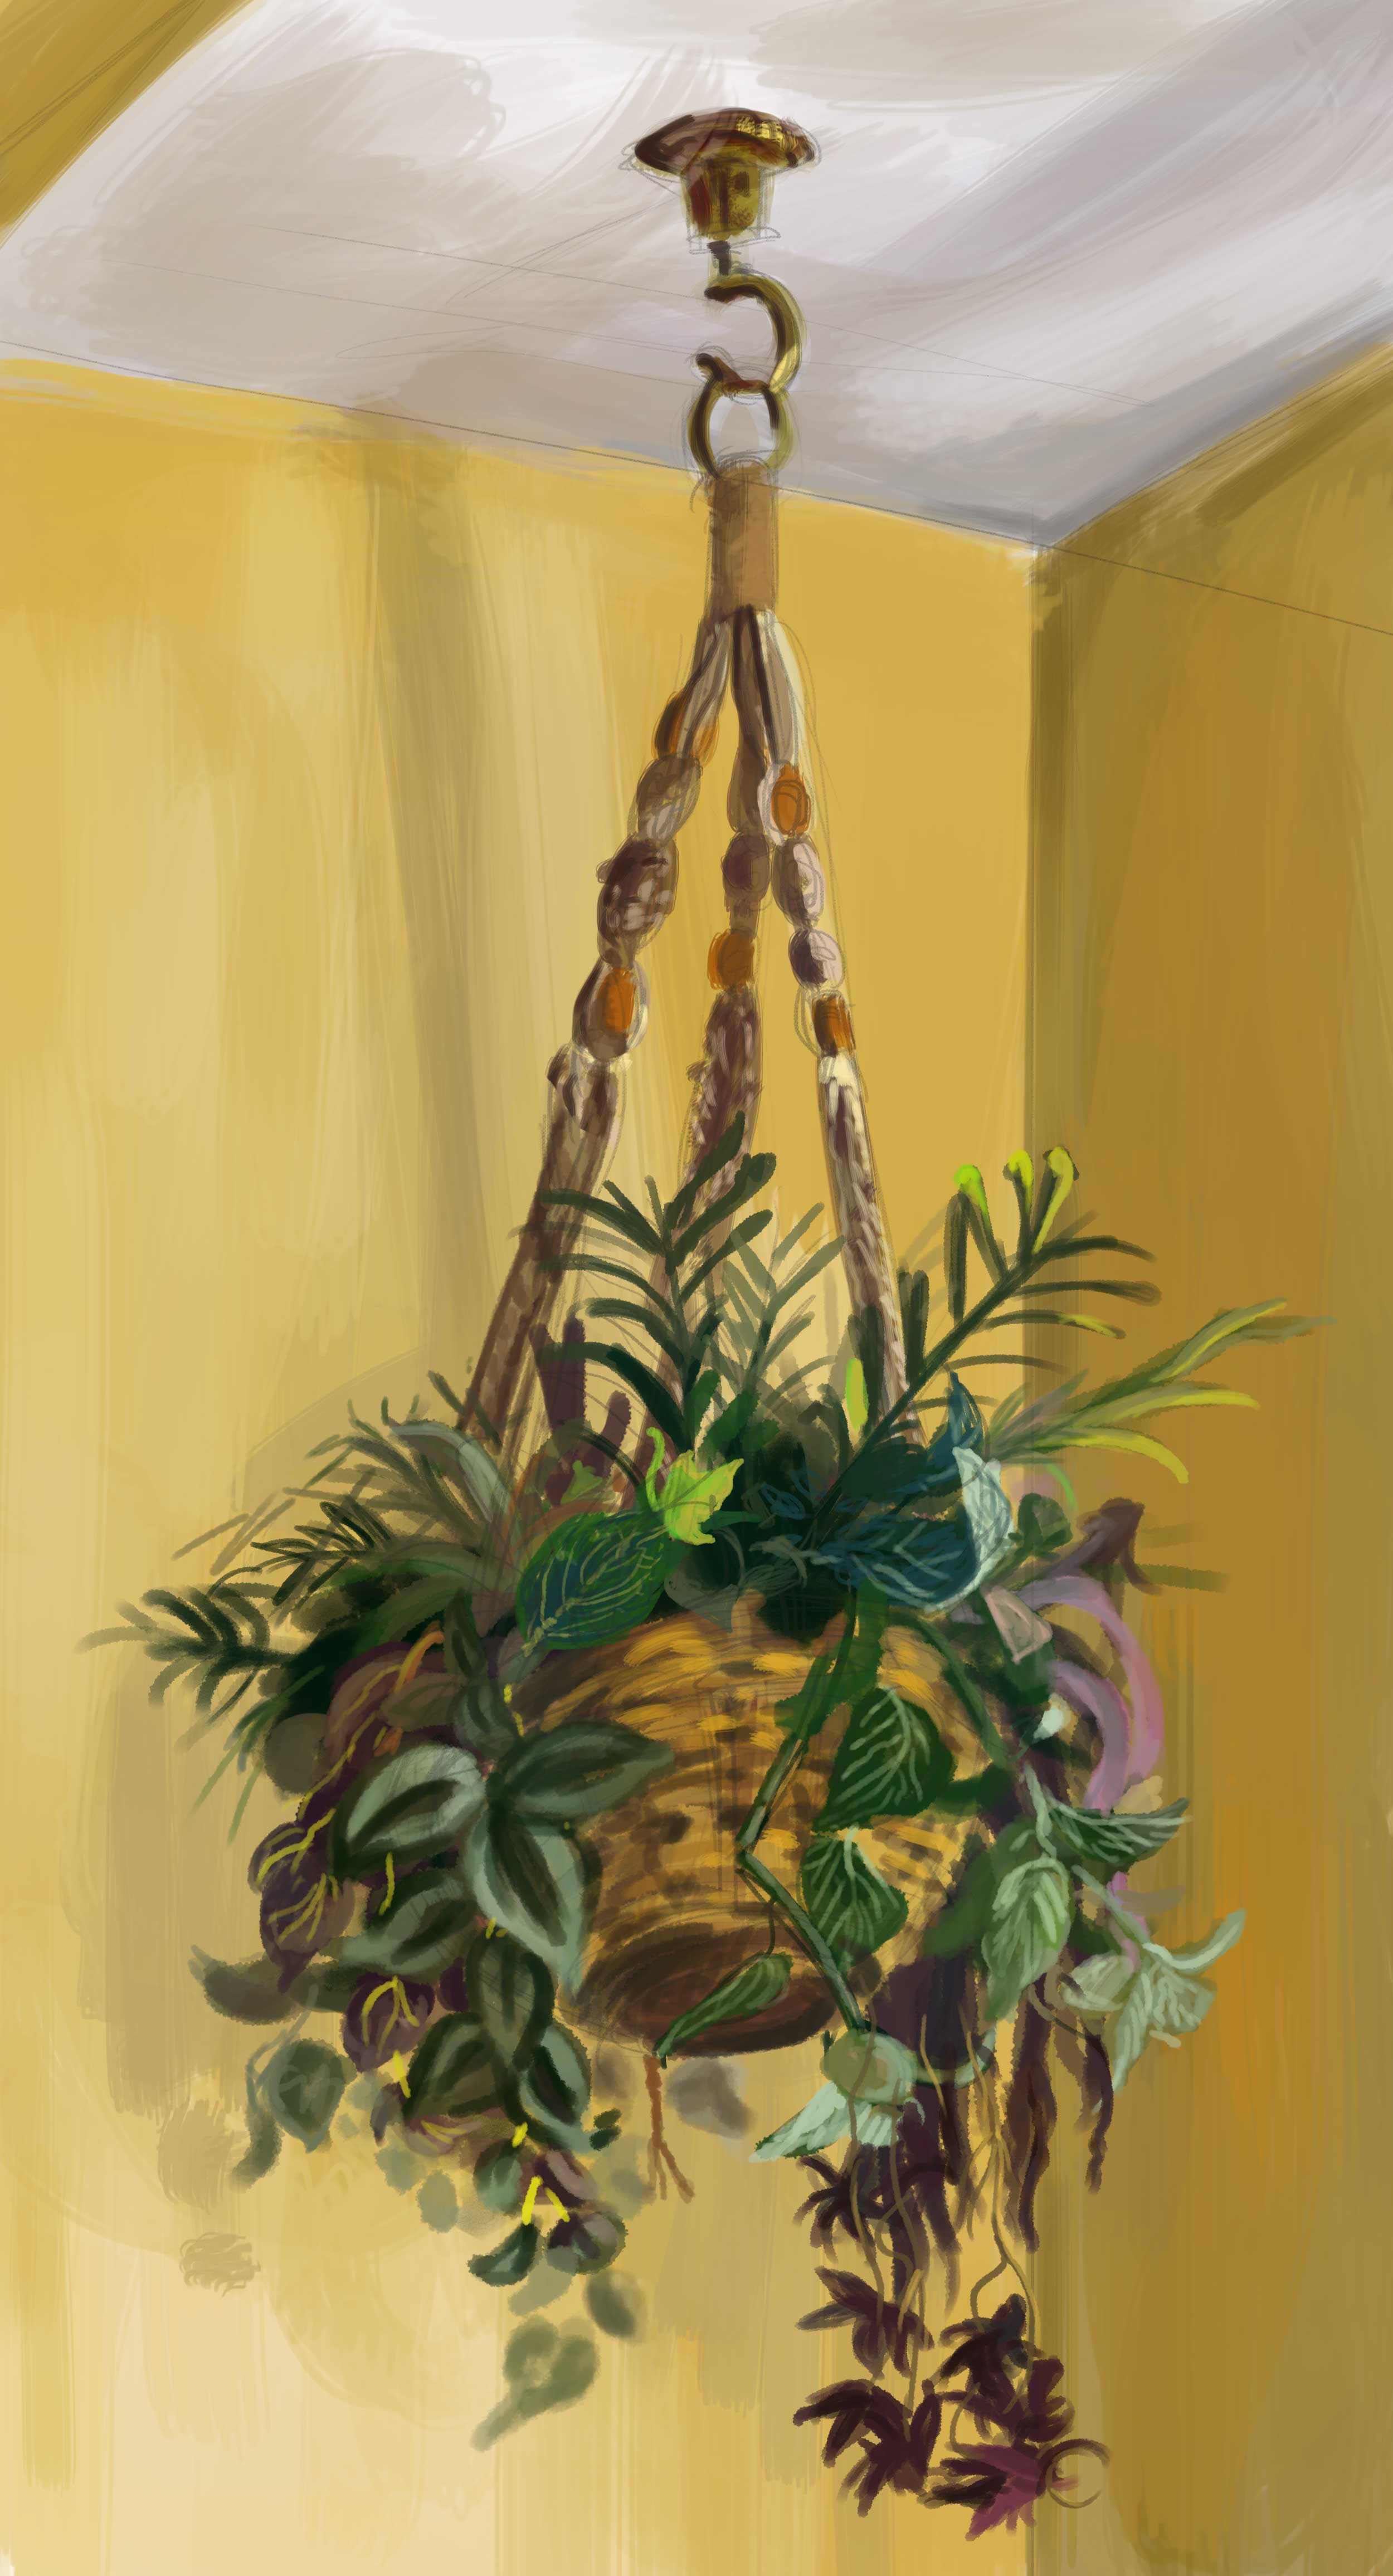 A study of a hanging plant. I think it took around 50 minutes